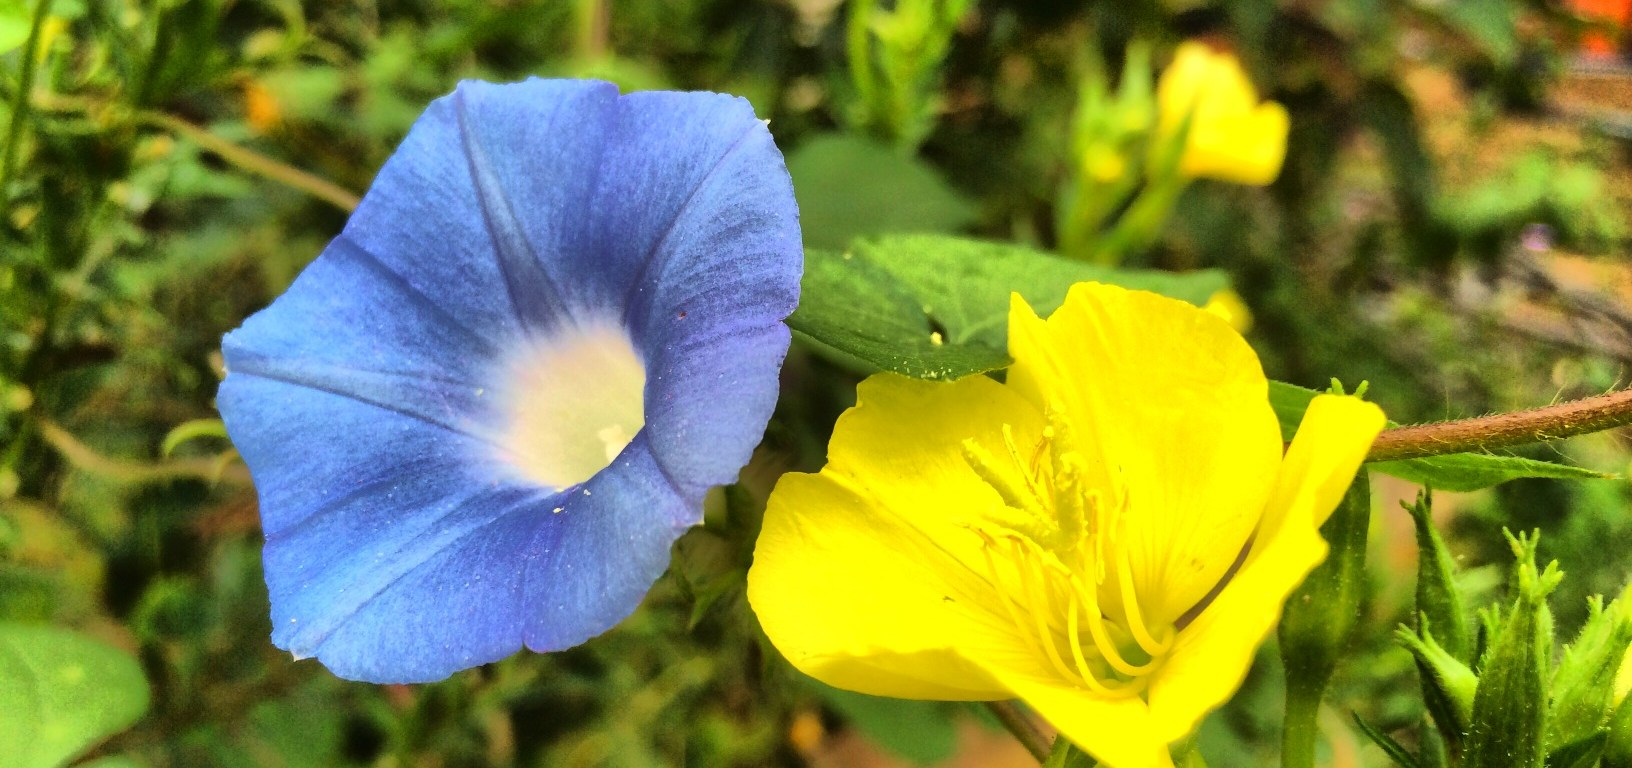 morning glory evening primrose